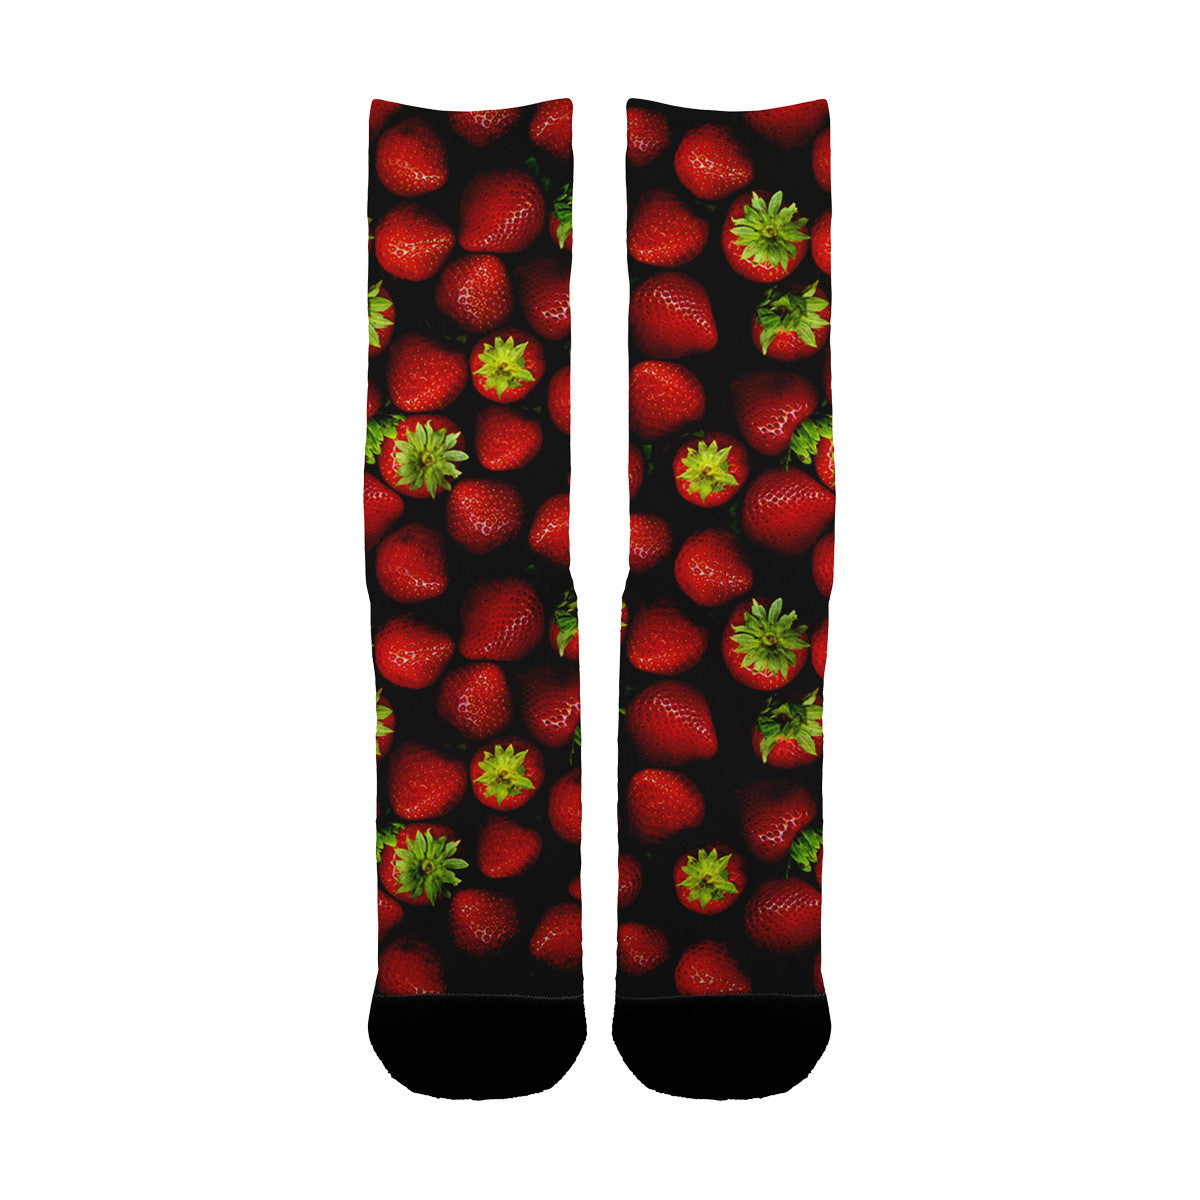 Strawberry Socks - Shweeet